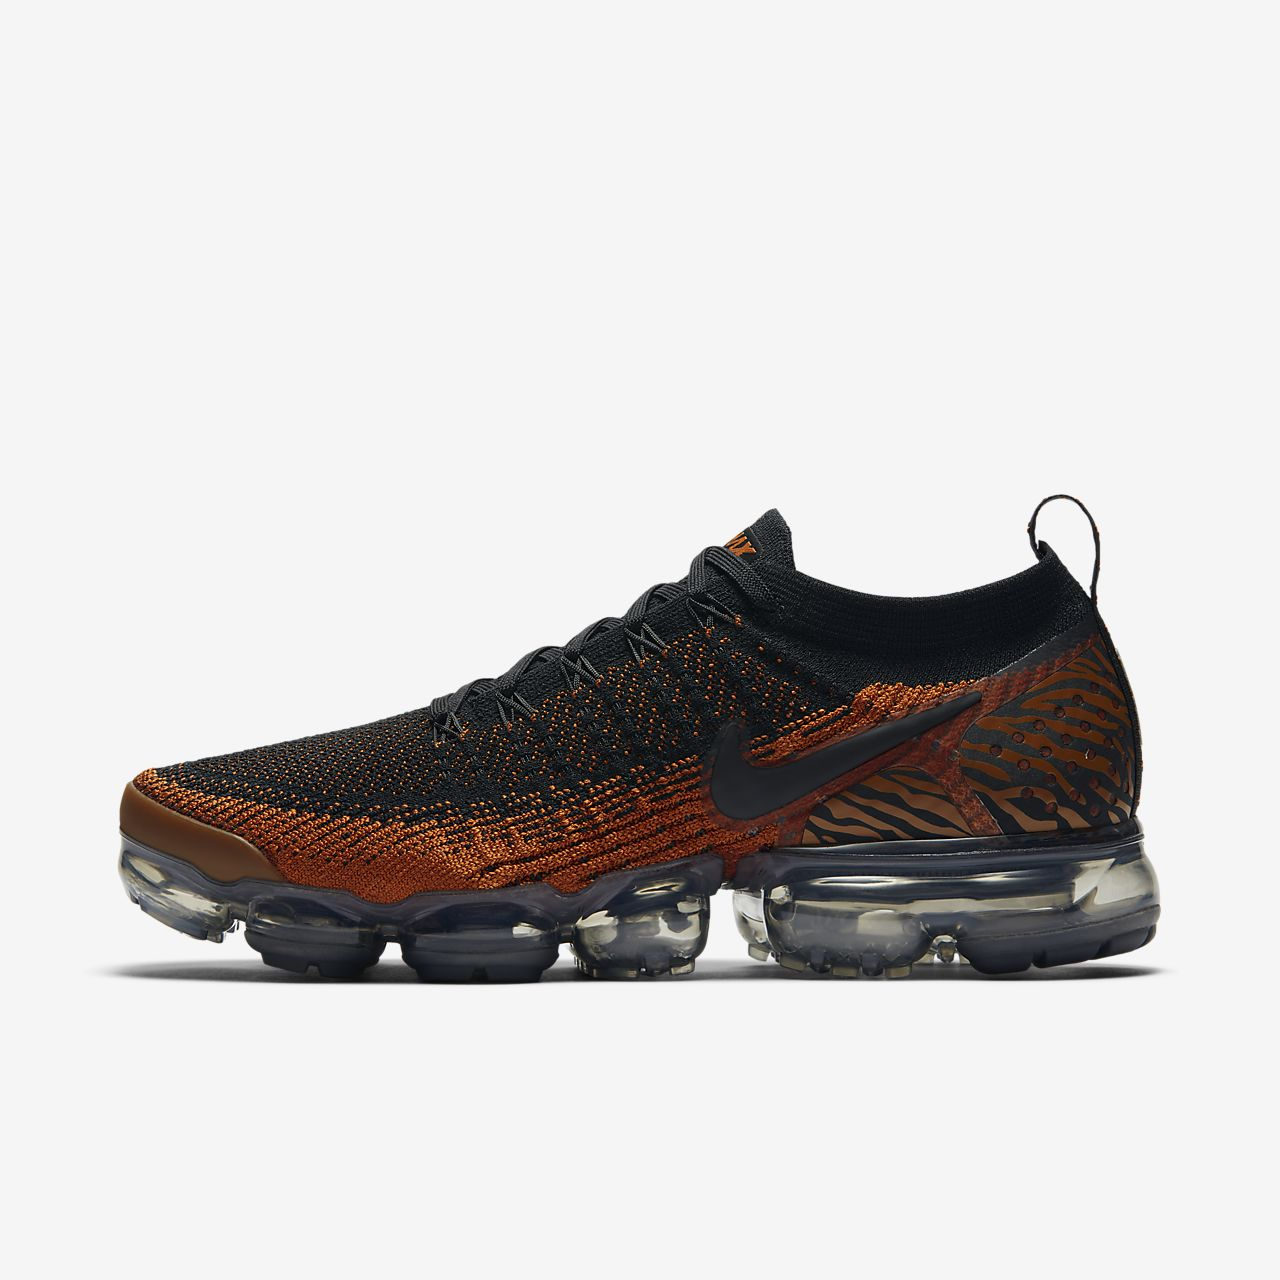 Tiger Air 2 Chaussure Vapormax Pour Flyknit Nike Ch Homme axXPF